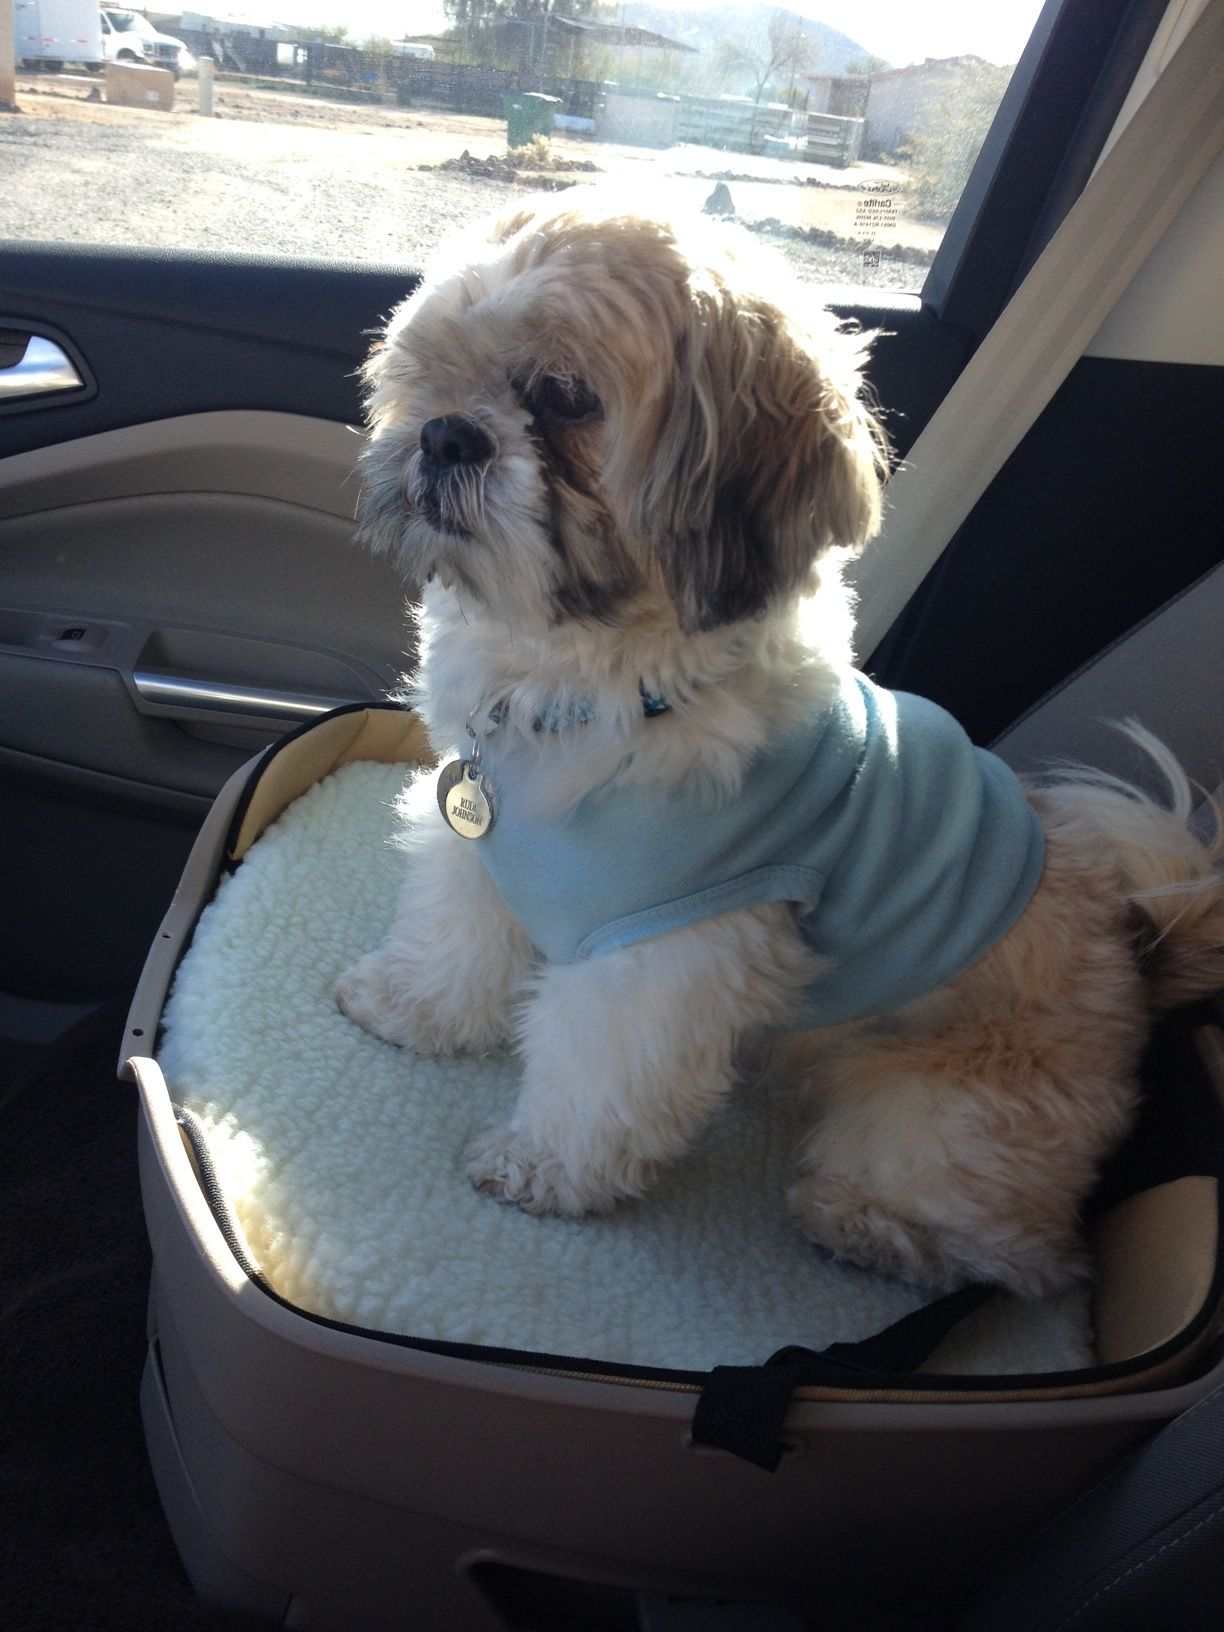 20 Travelling With Shih Tzu Tips For A Better Journey Shih Tzu Shih Tzu Dog Shih Tzu Puppy